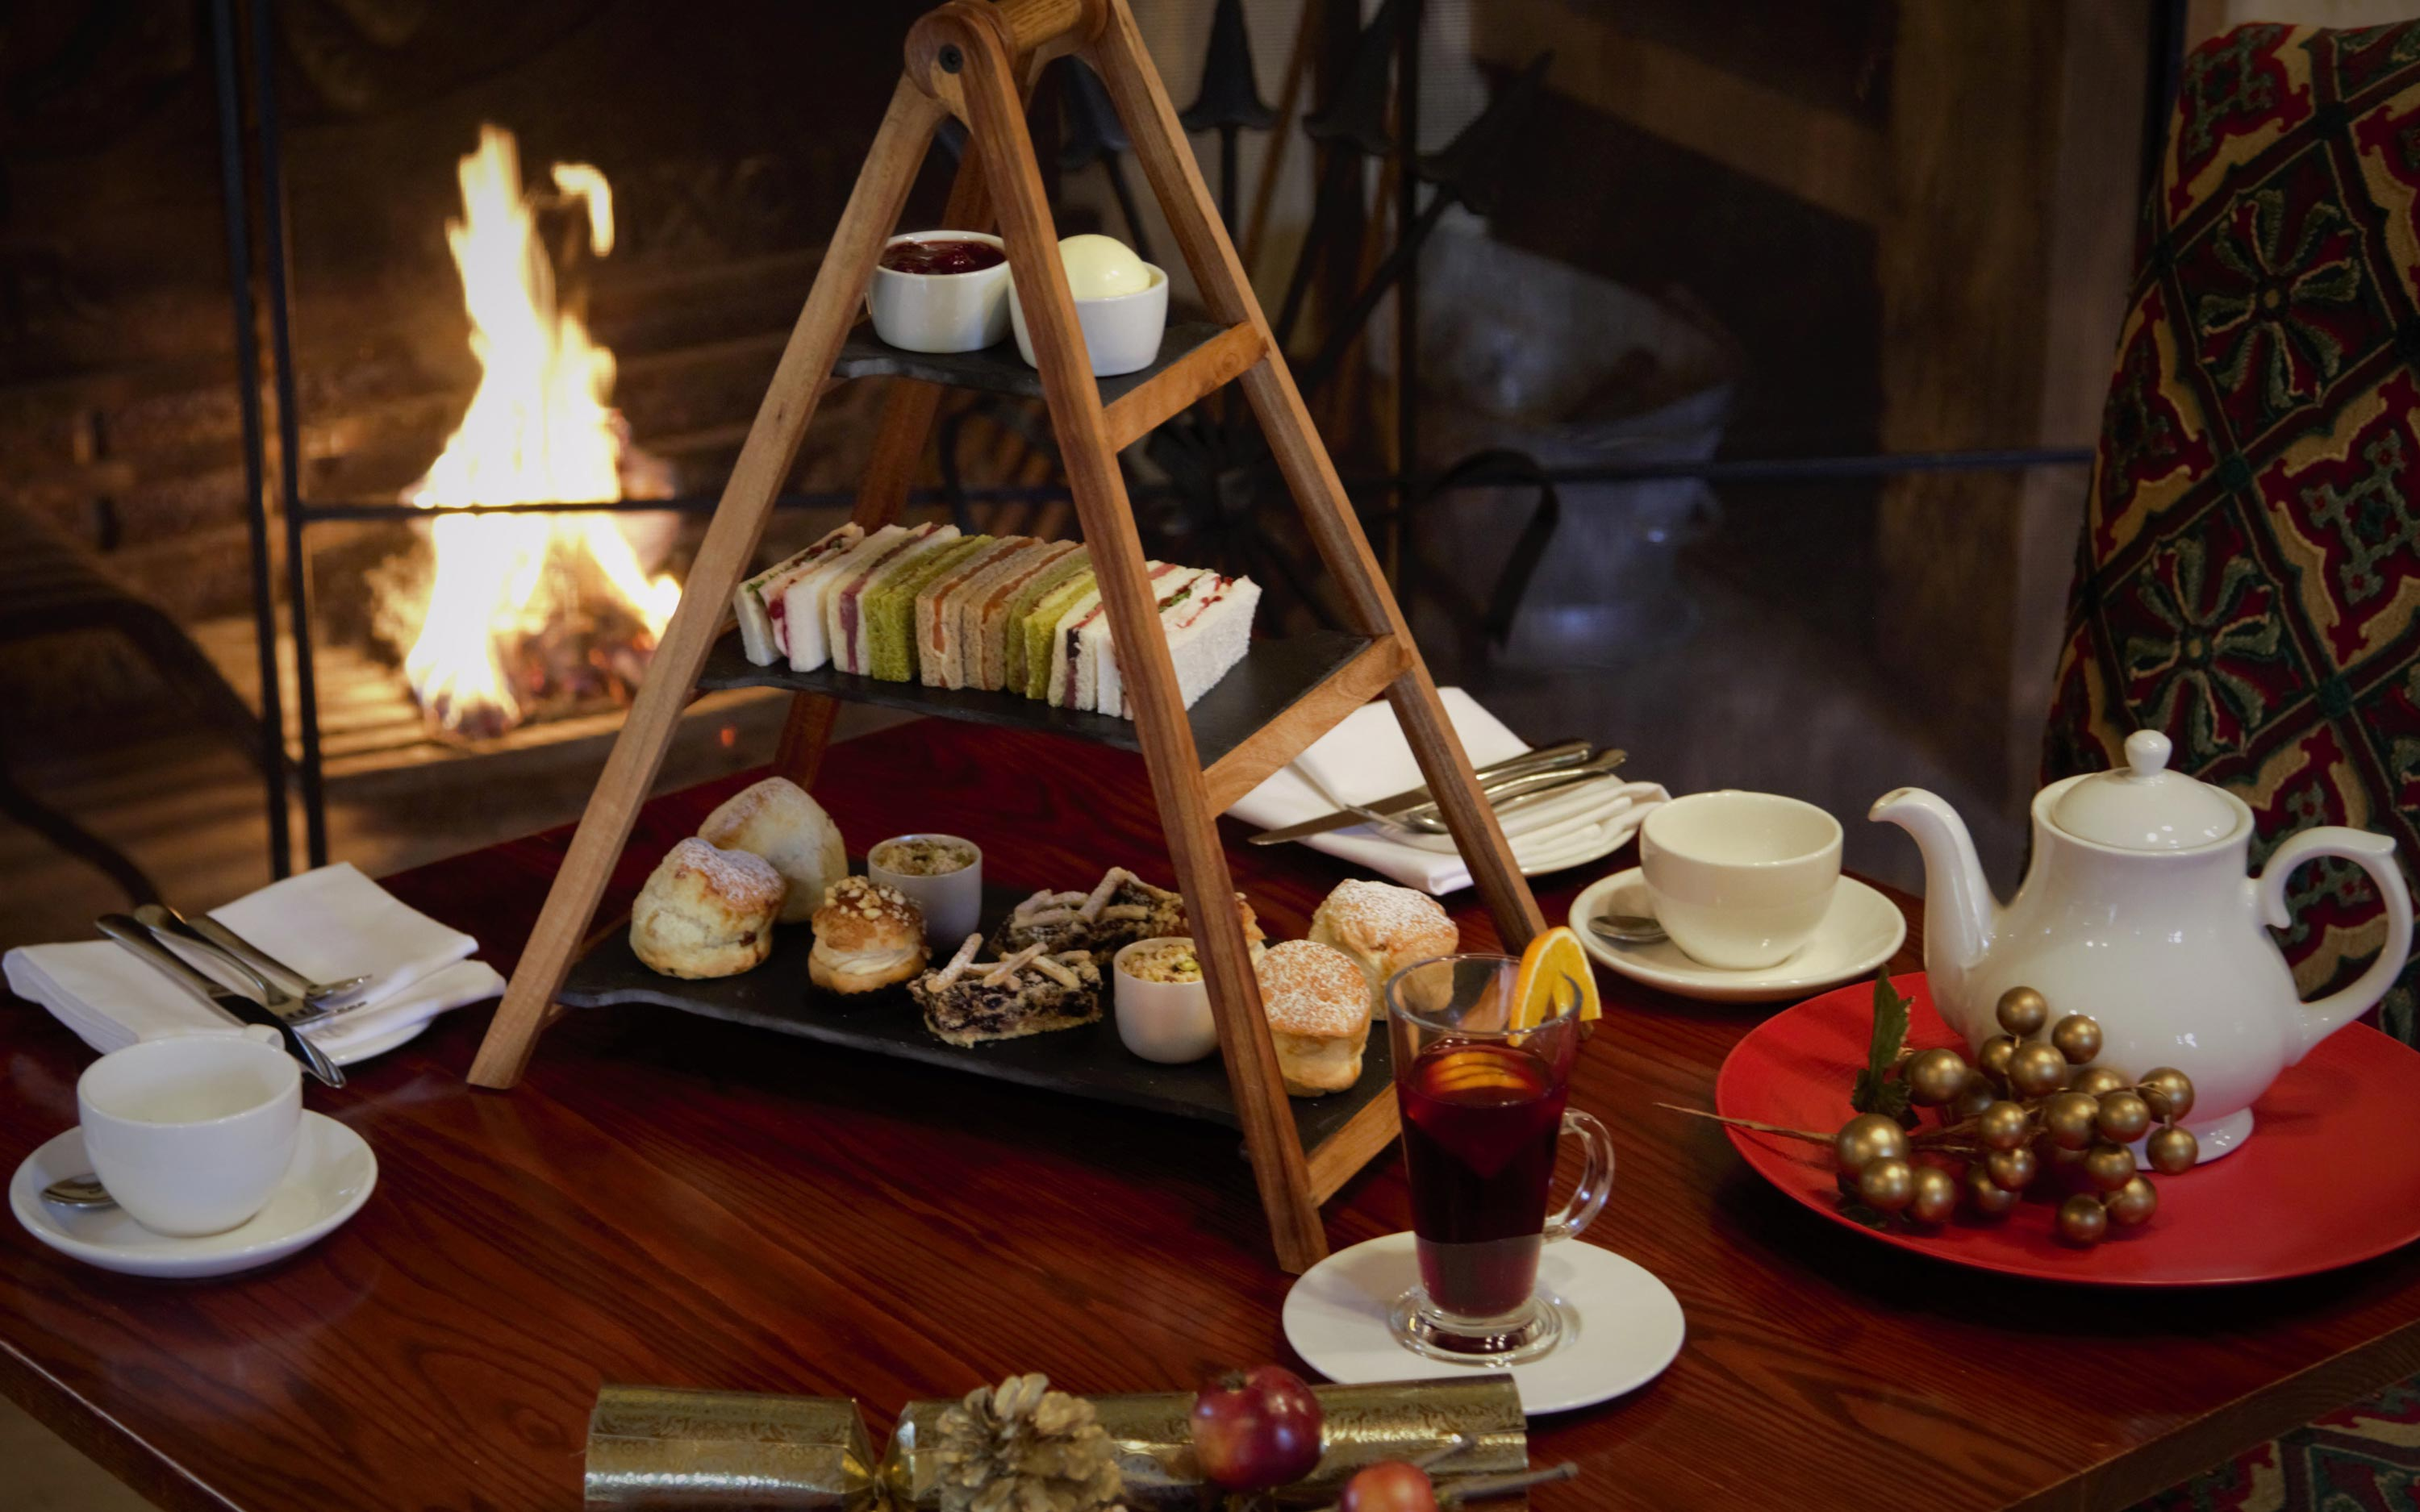 Festive afternoon tea at the Five Arrows